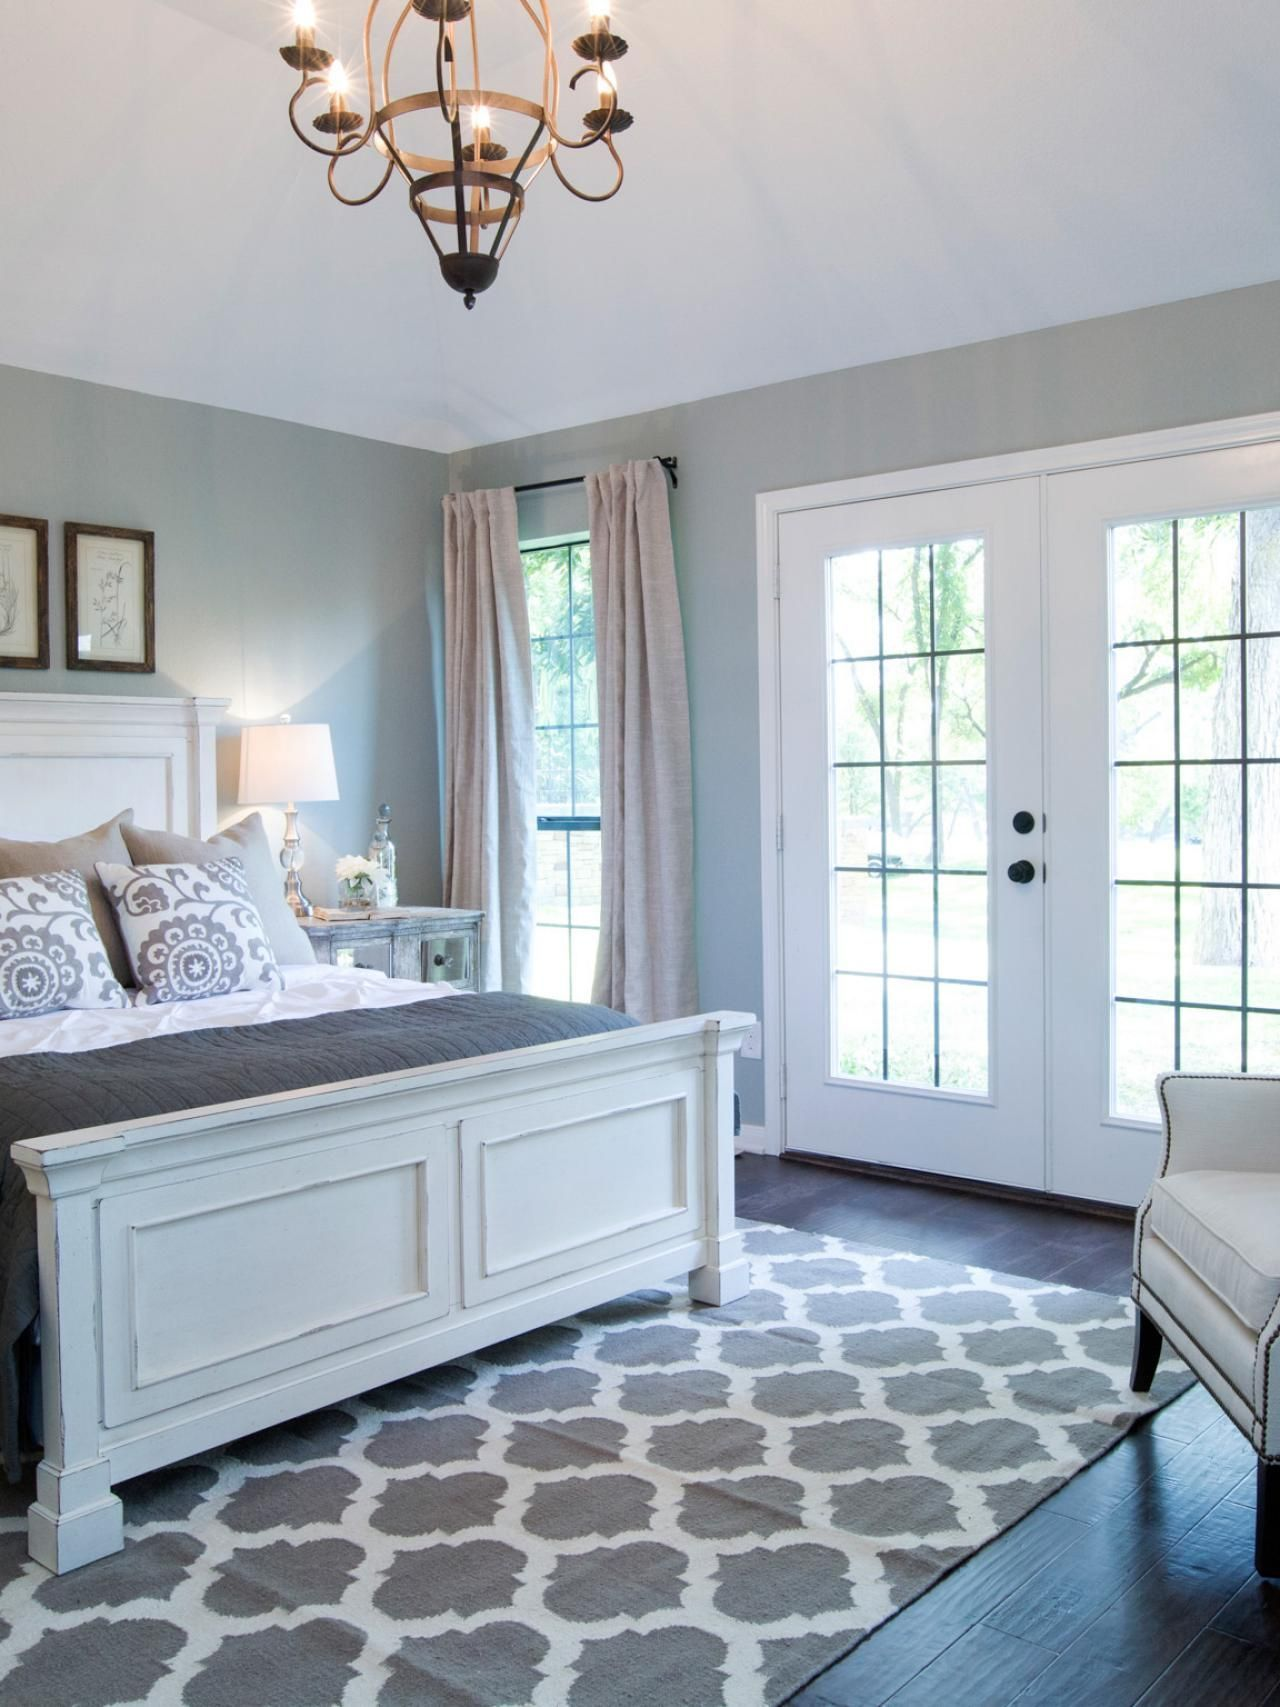 8 Gorgeous Small Master Bedroom Ideas (Decor & Design